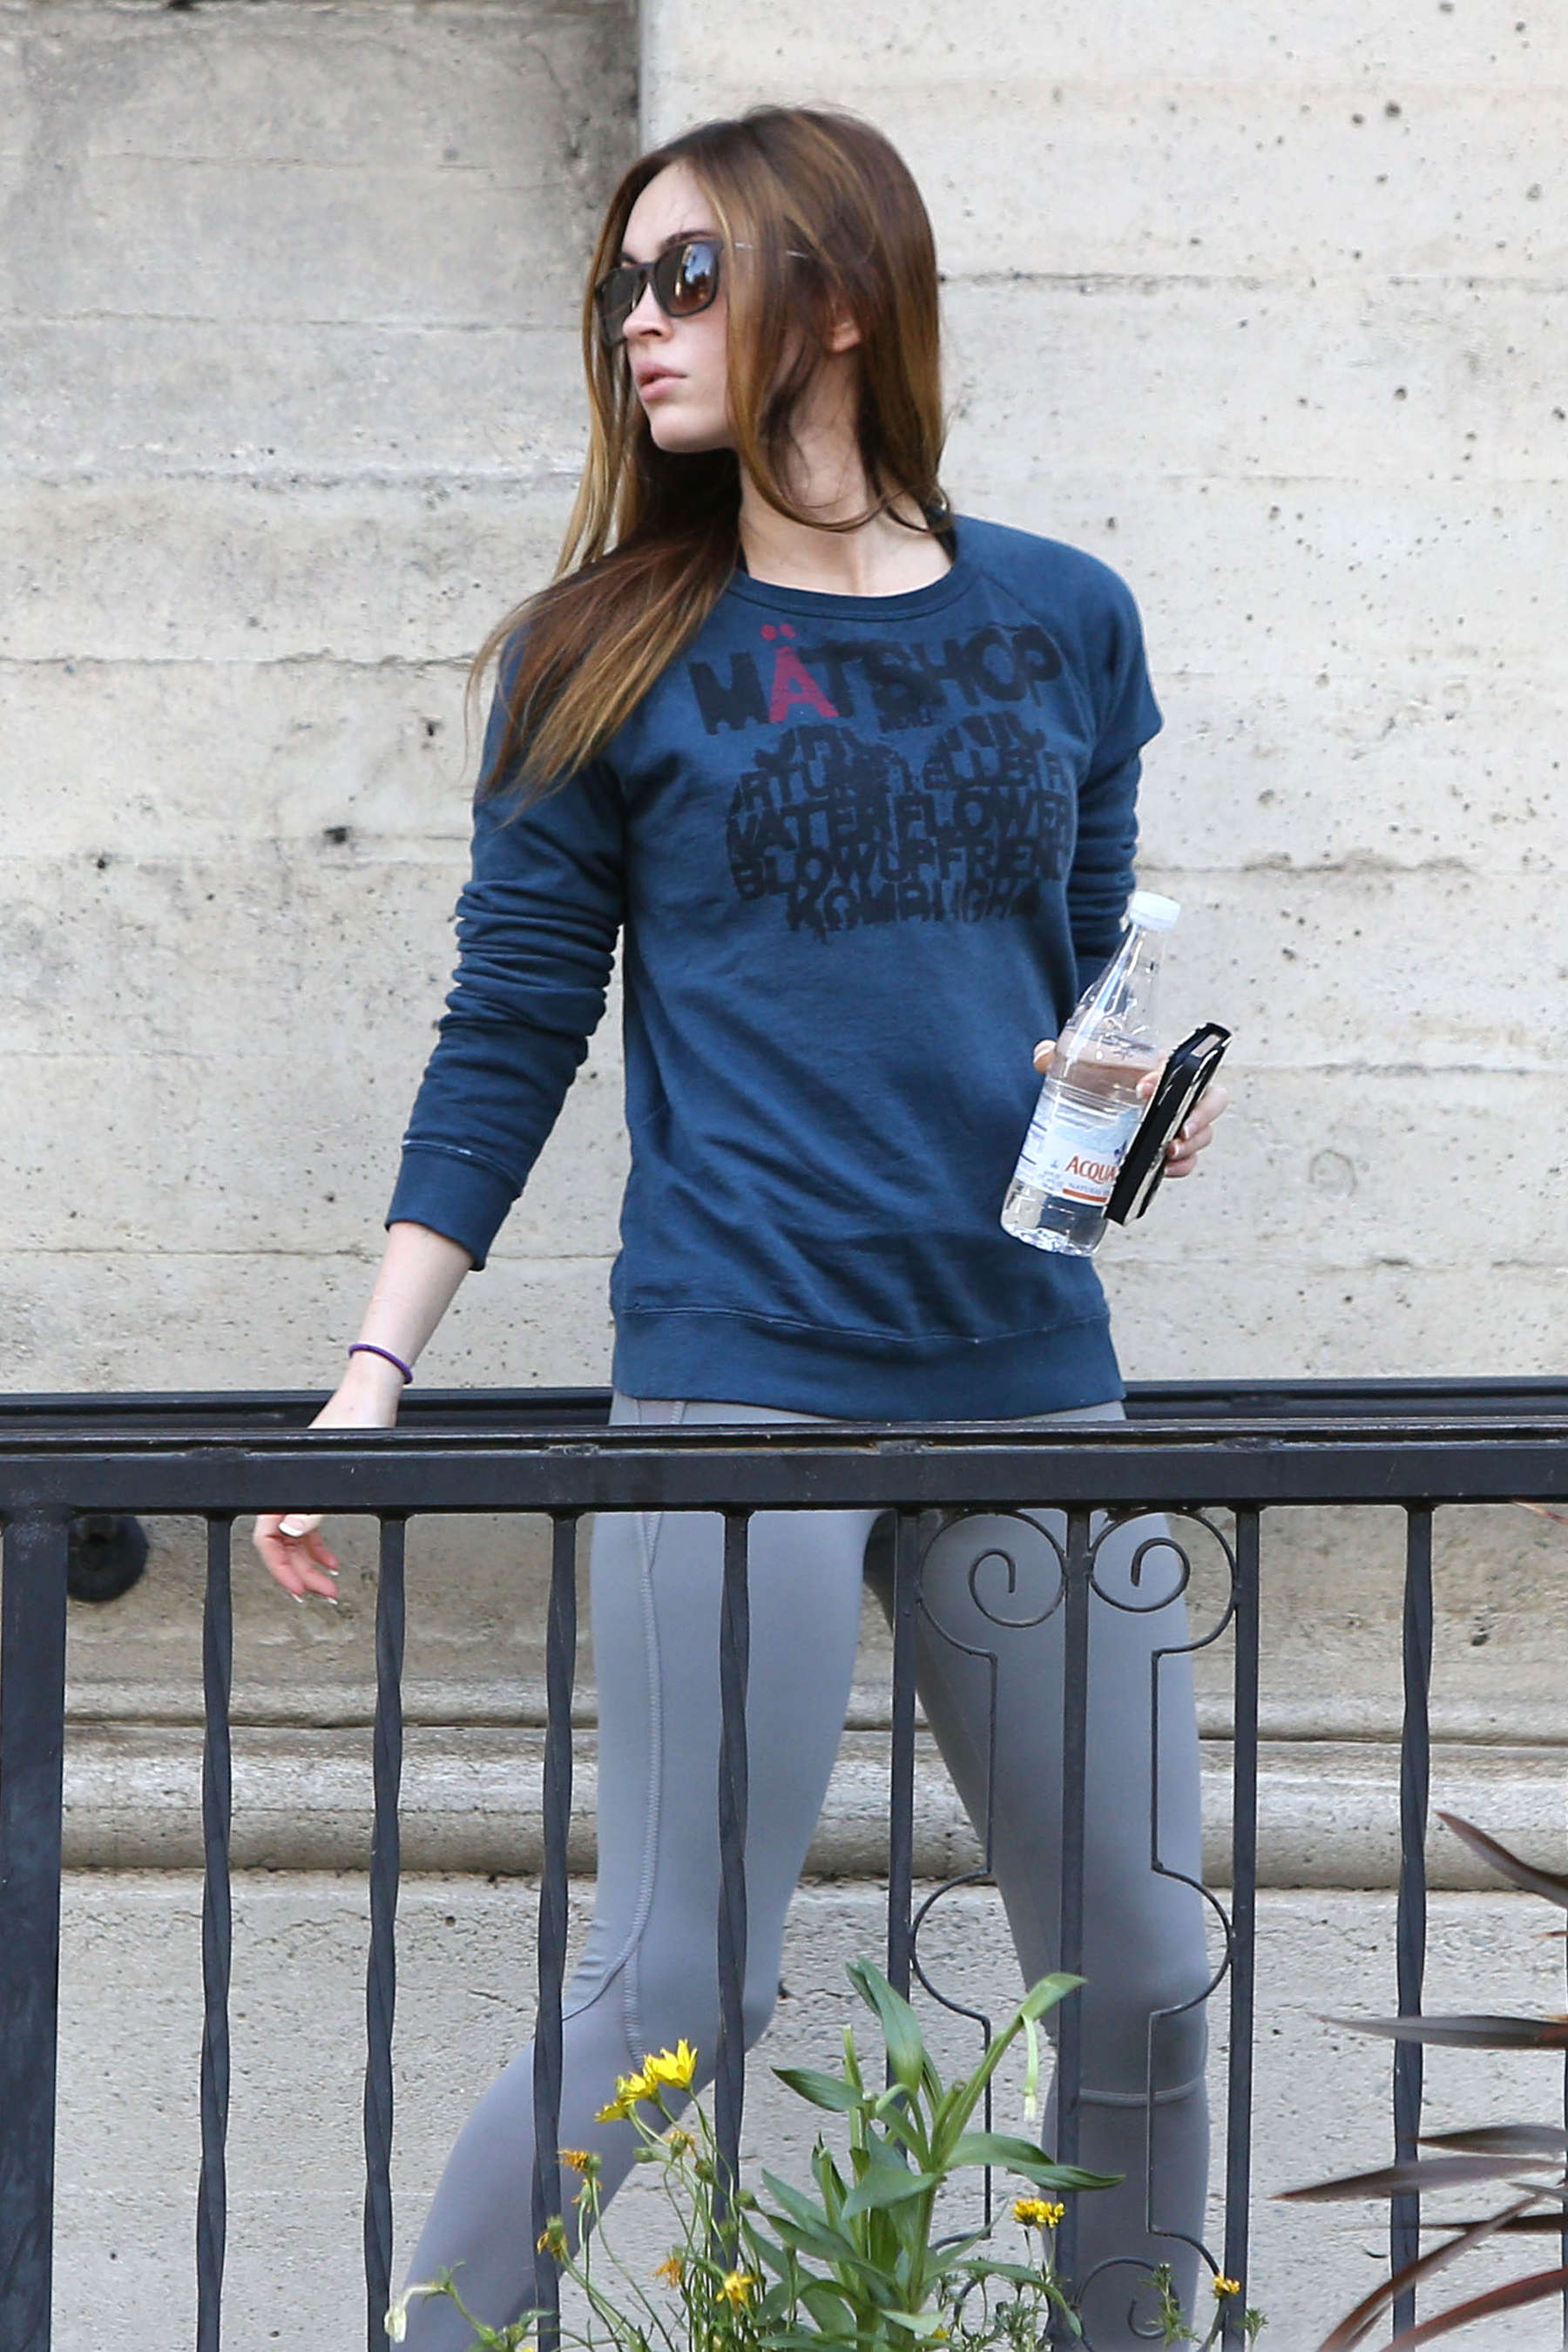 megan fox out in la gotceleb